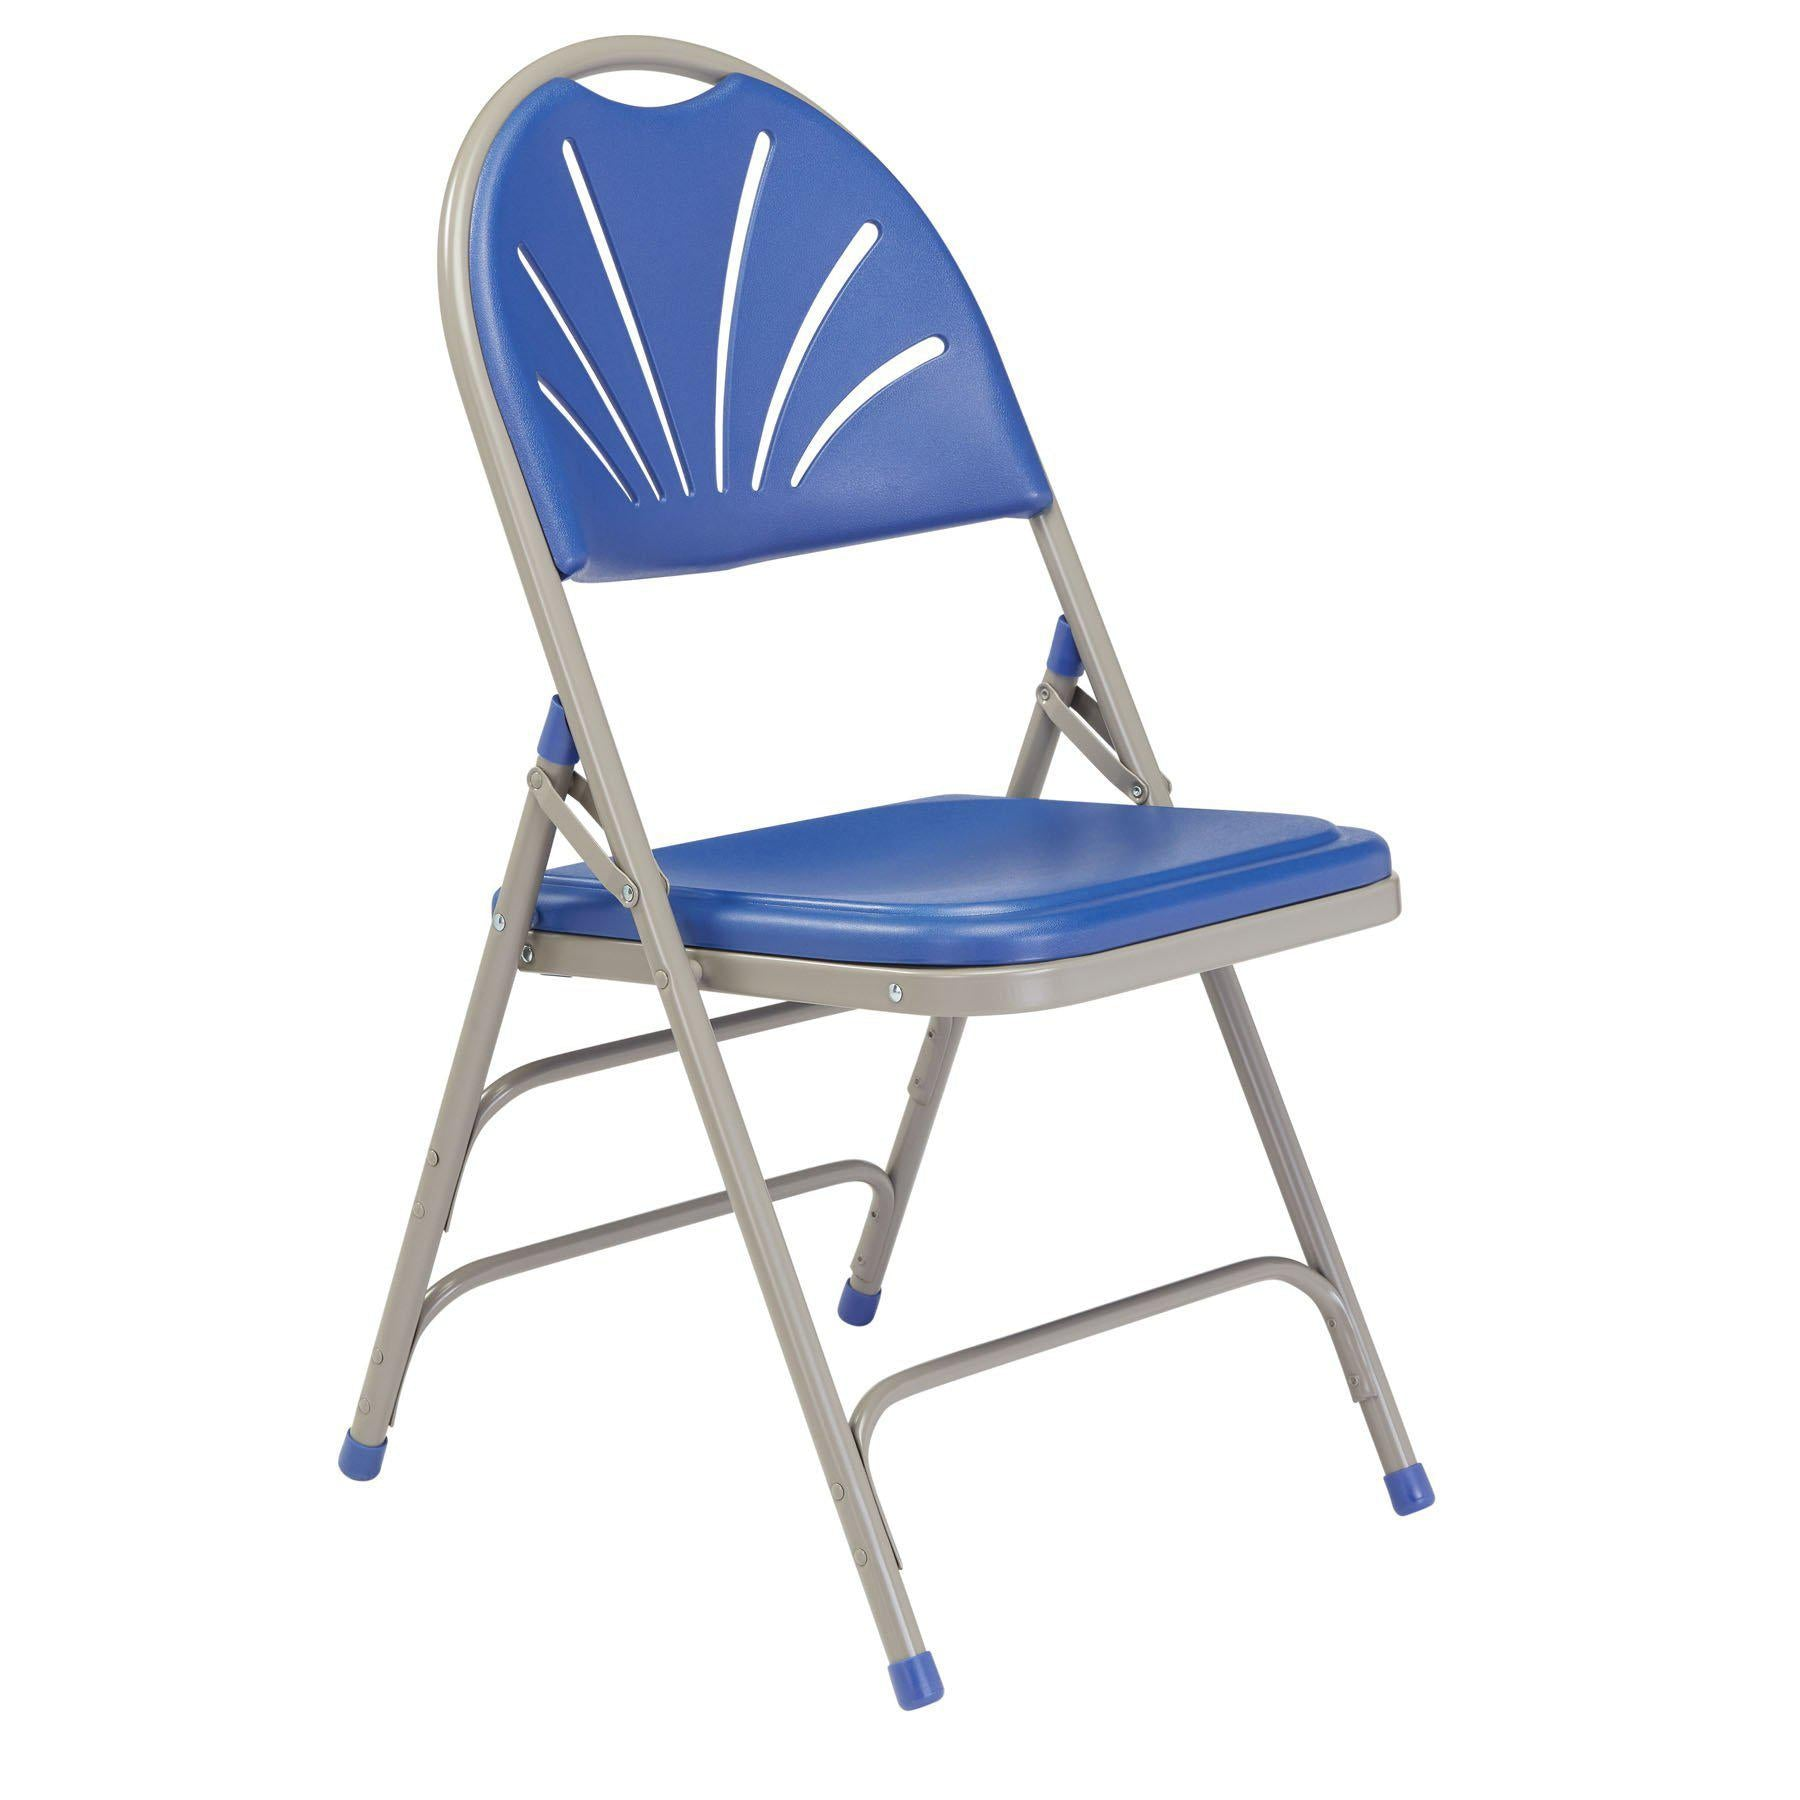 Deluxe Fan Back Double Hinge Folding Chair With Triple Brace (Carton of 4)